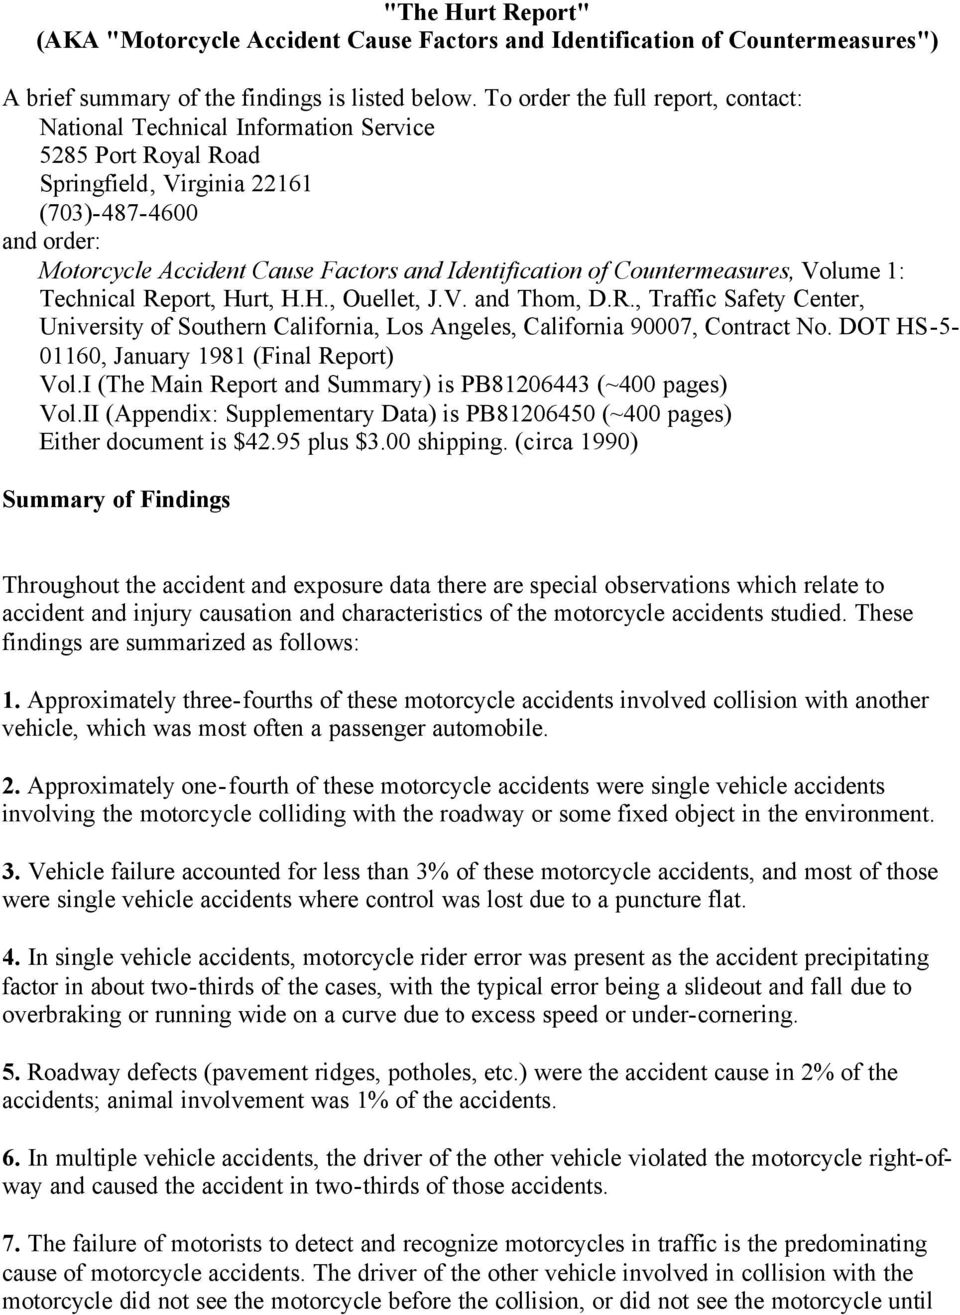 Identification of Countermeasures, Volume 1: Technical Report, Hurt, H.H., Ouellet, J.V. and Thom, D.R., Traffic Safety Center, University of Southern California, Los Angeles, California 90007, Contract No.